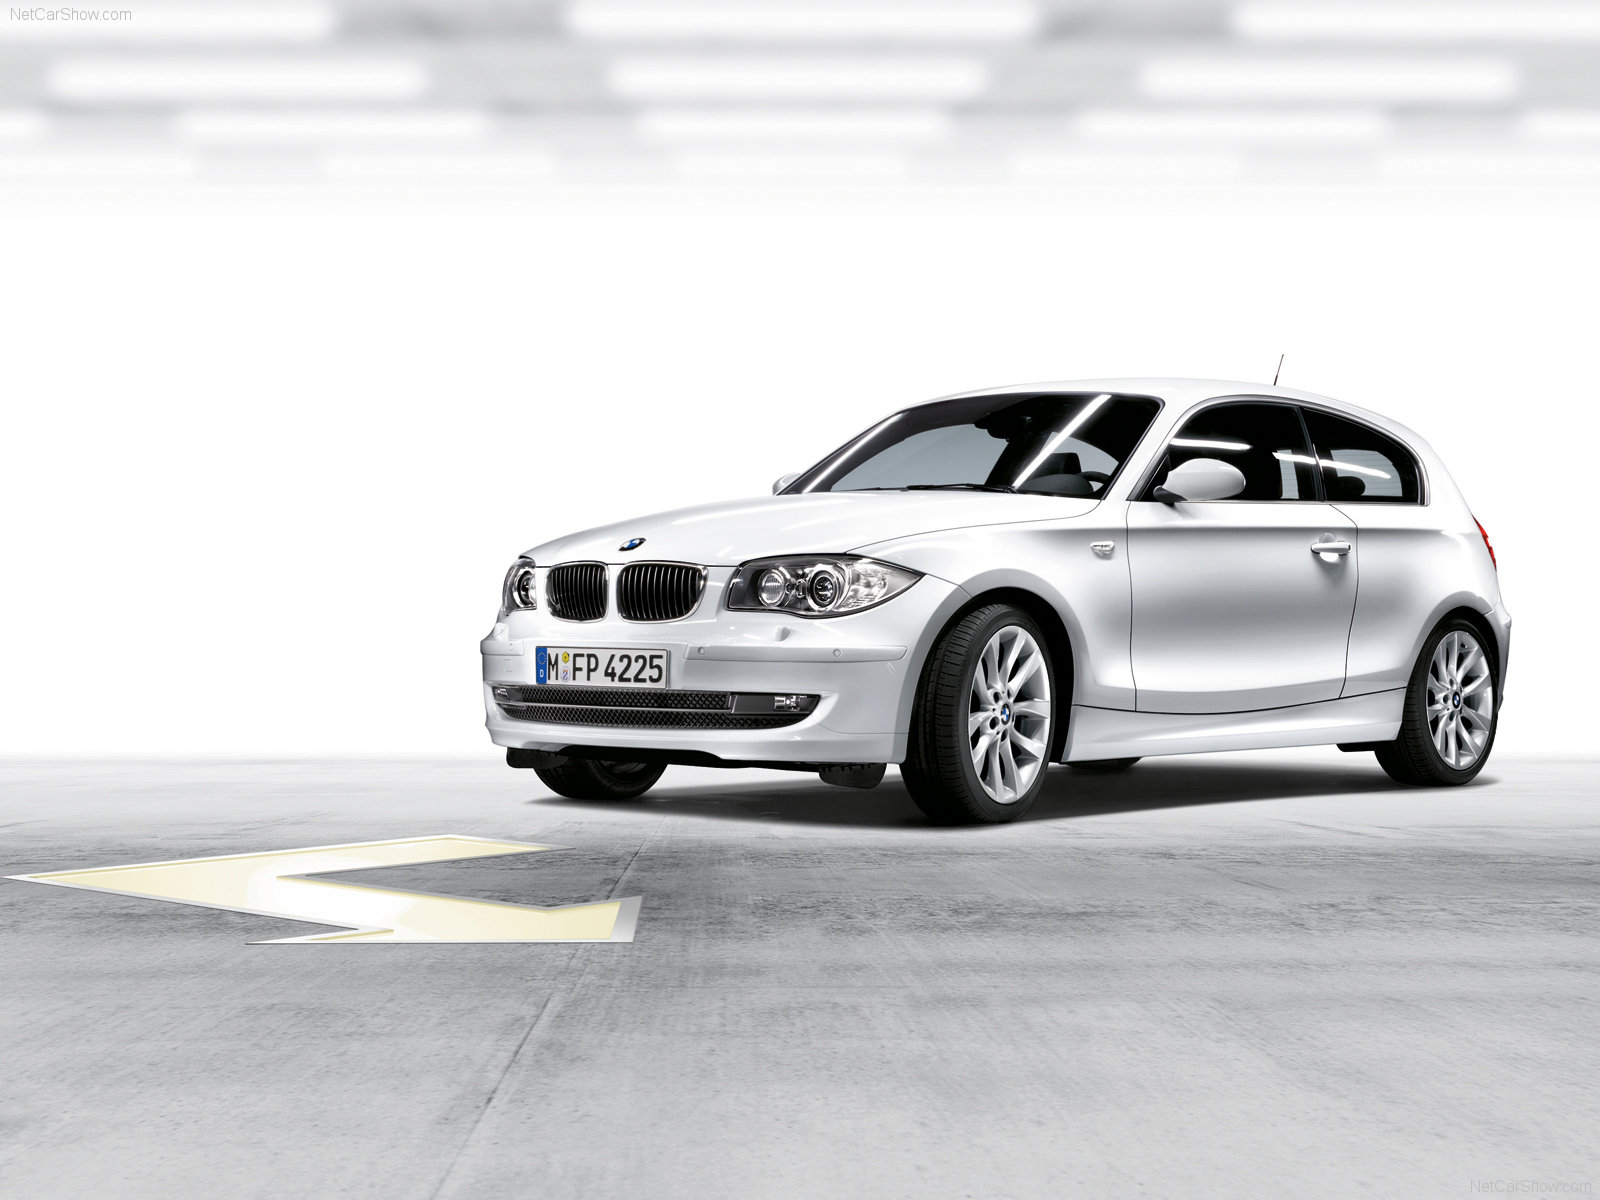 Bmw 1 series 3 door e81 photos photogallery with 58 pics for 135i 3 door